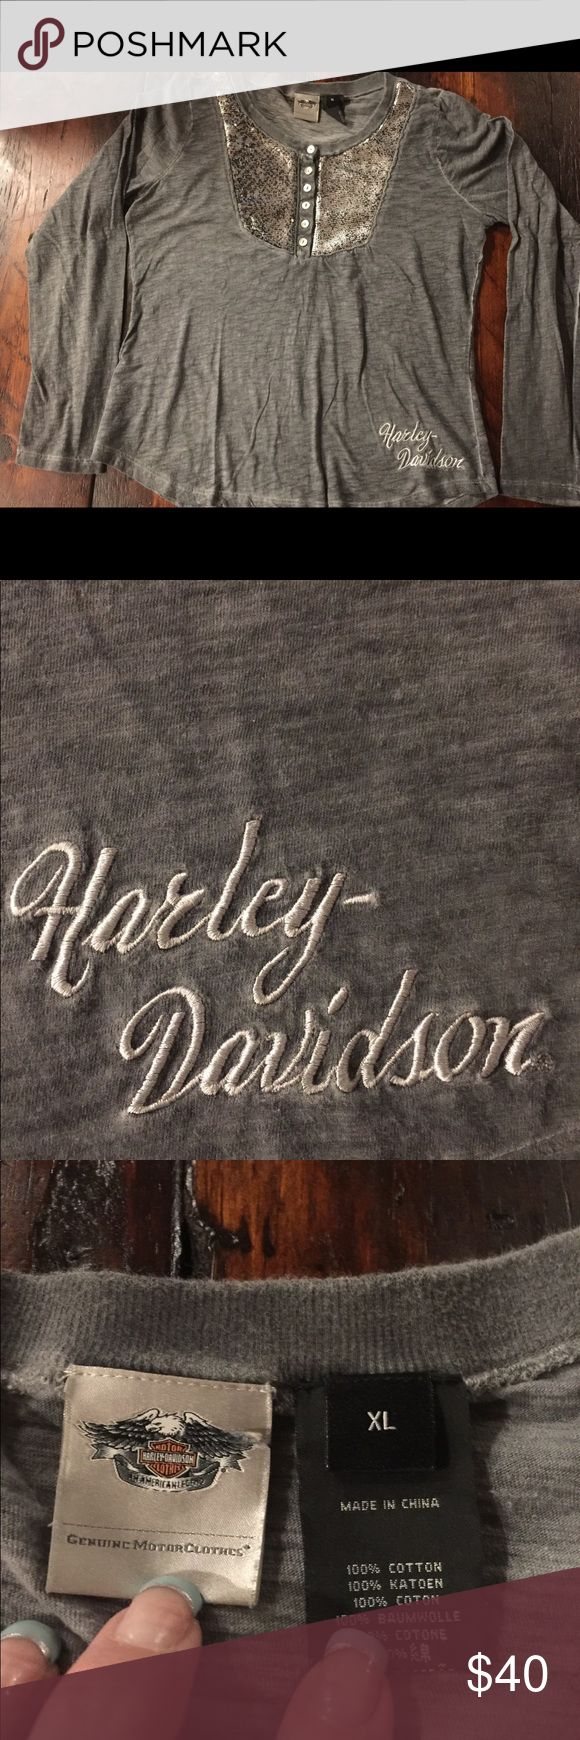 Harley Davidson shirt Size XL... bought from the Harley store. Super cute- loose fit and pretty sequins. Smoke free/ pet free home. Harley-Davidson Tops Tees - Long Sleeve